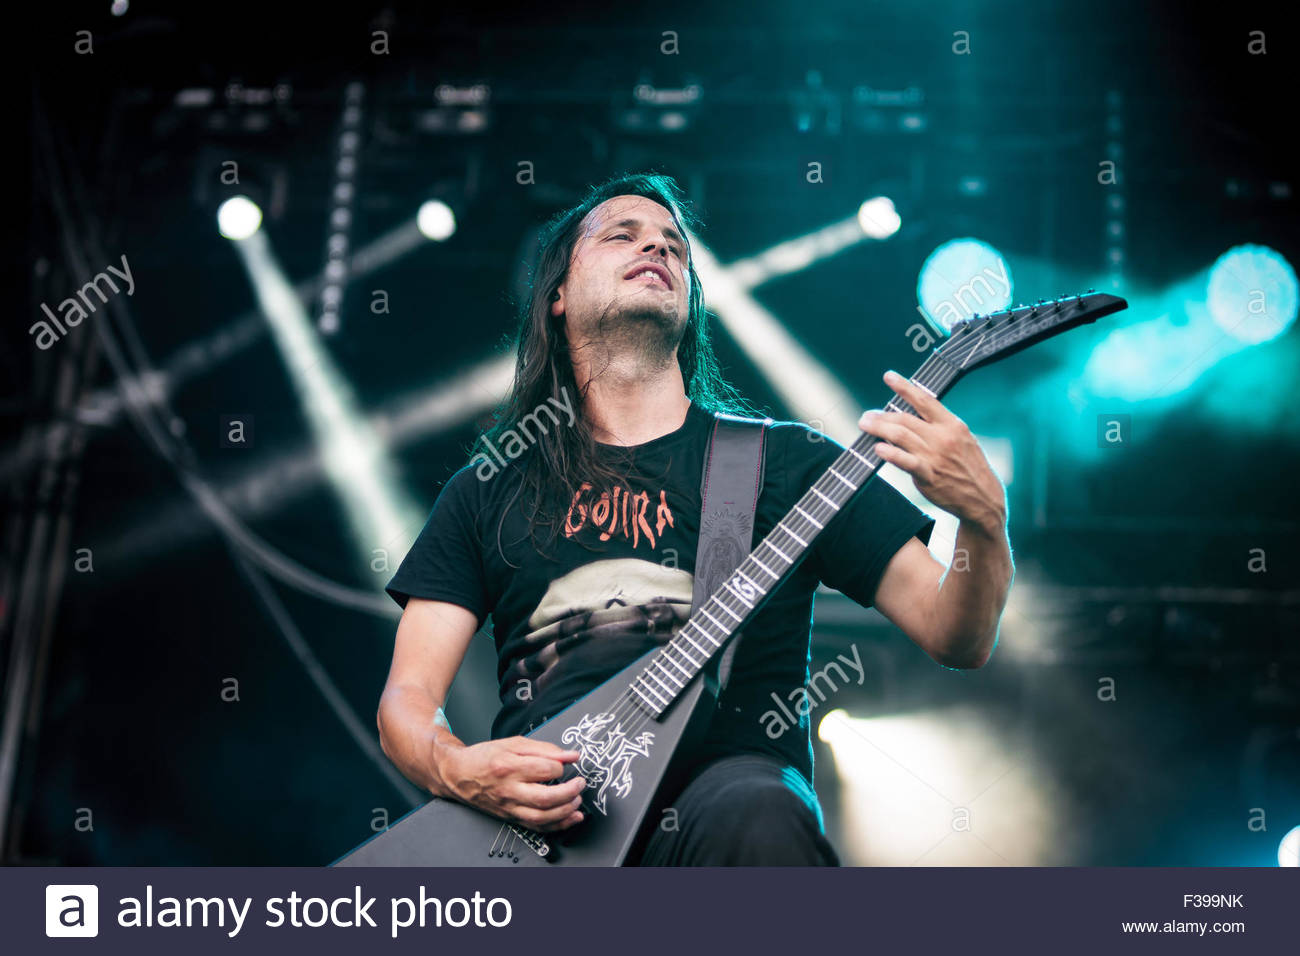 Heavy Metal band Gojira performing live : guitar player Christian Andreu Stock Photo